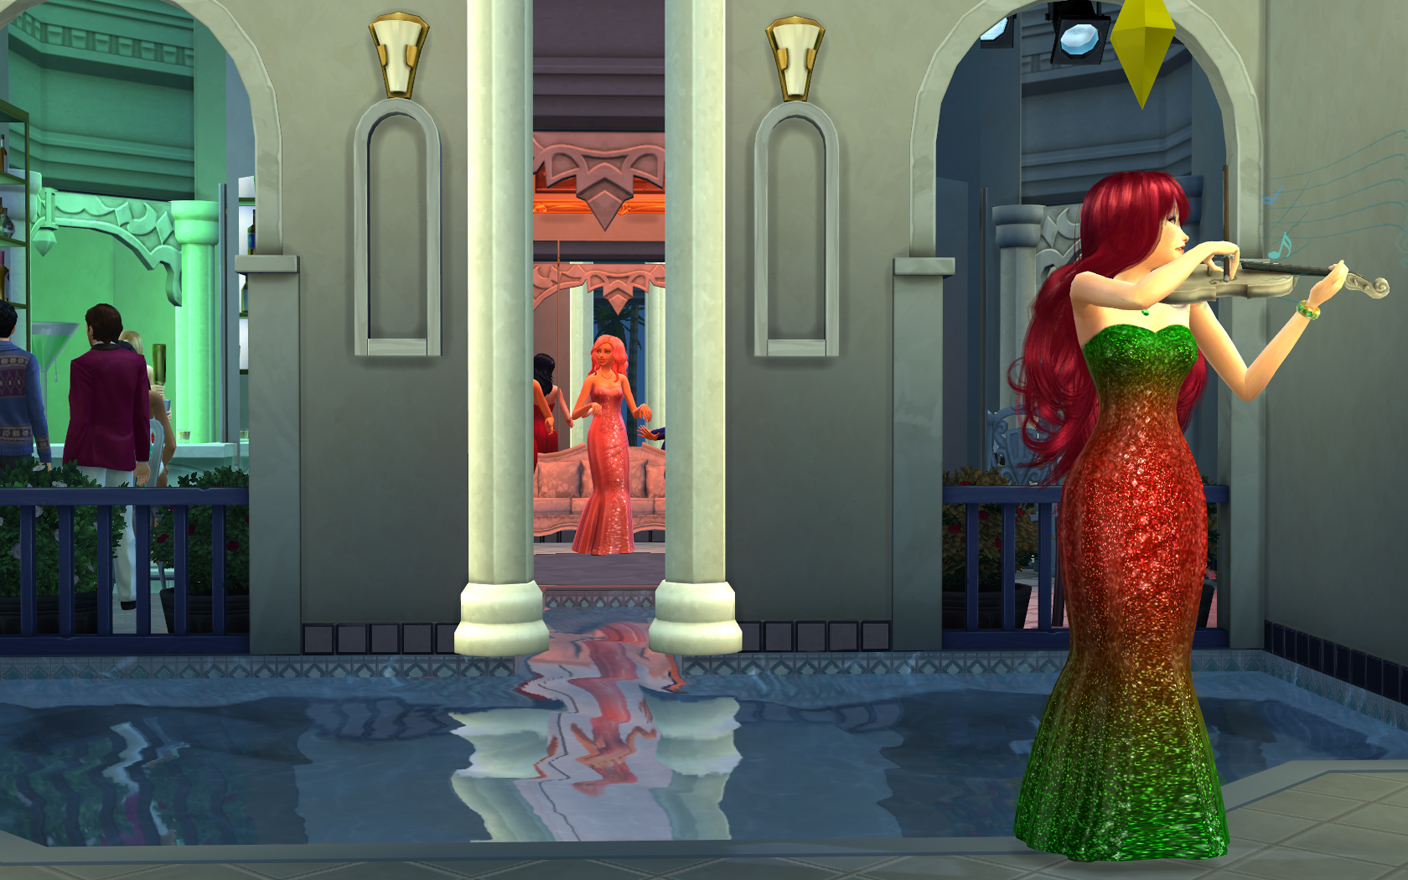 The sims 3 mermaid tail download xxx movies